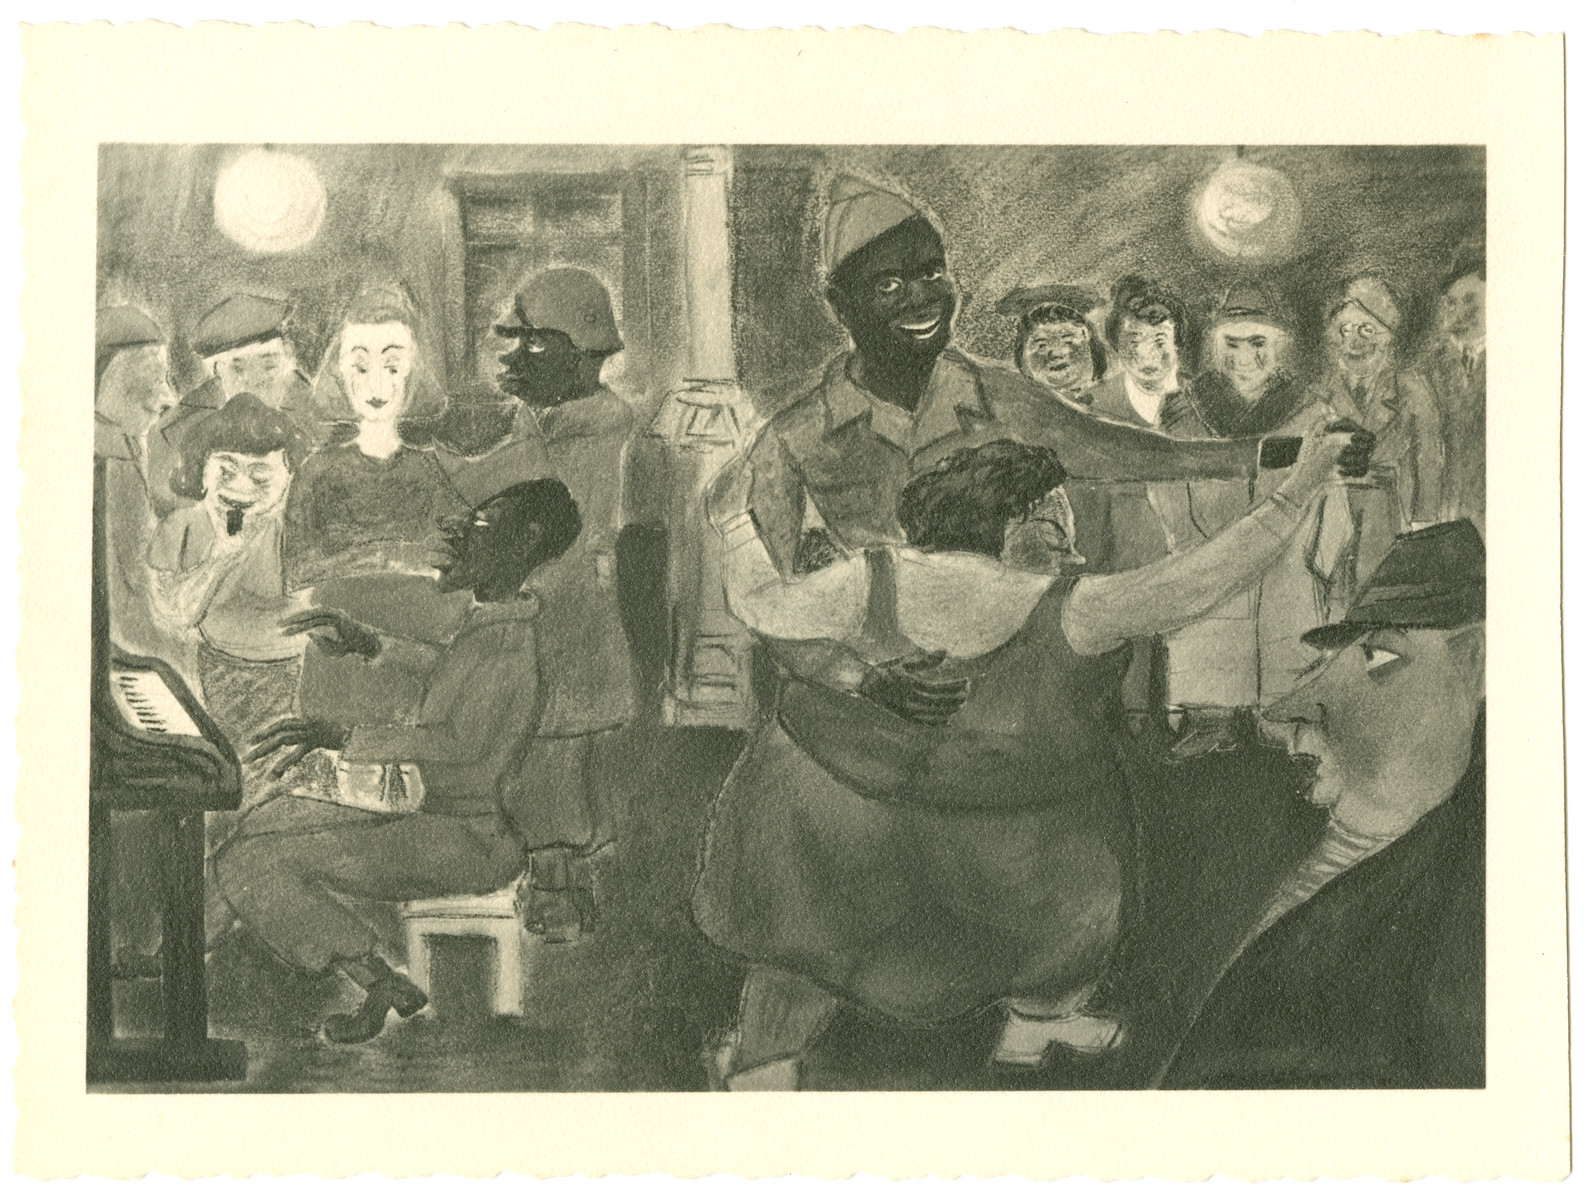 Caricature by by Julian Feingold of  showing Afro-American soldiers dancing with women.